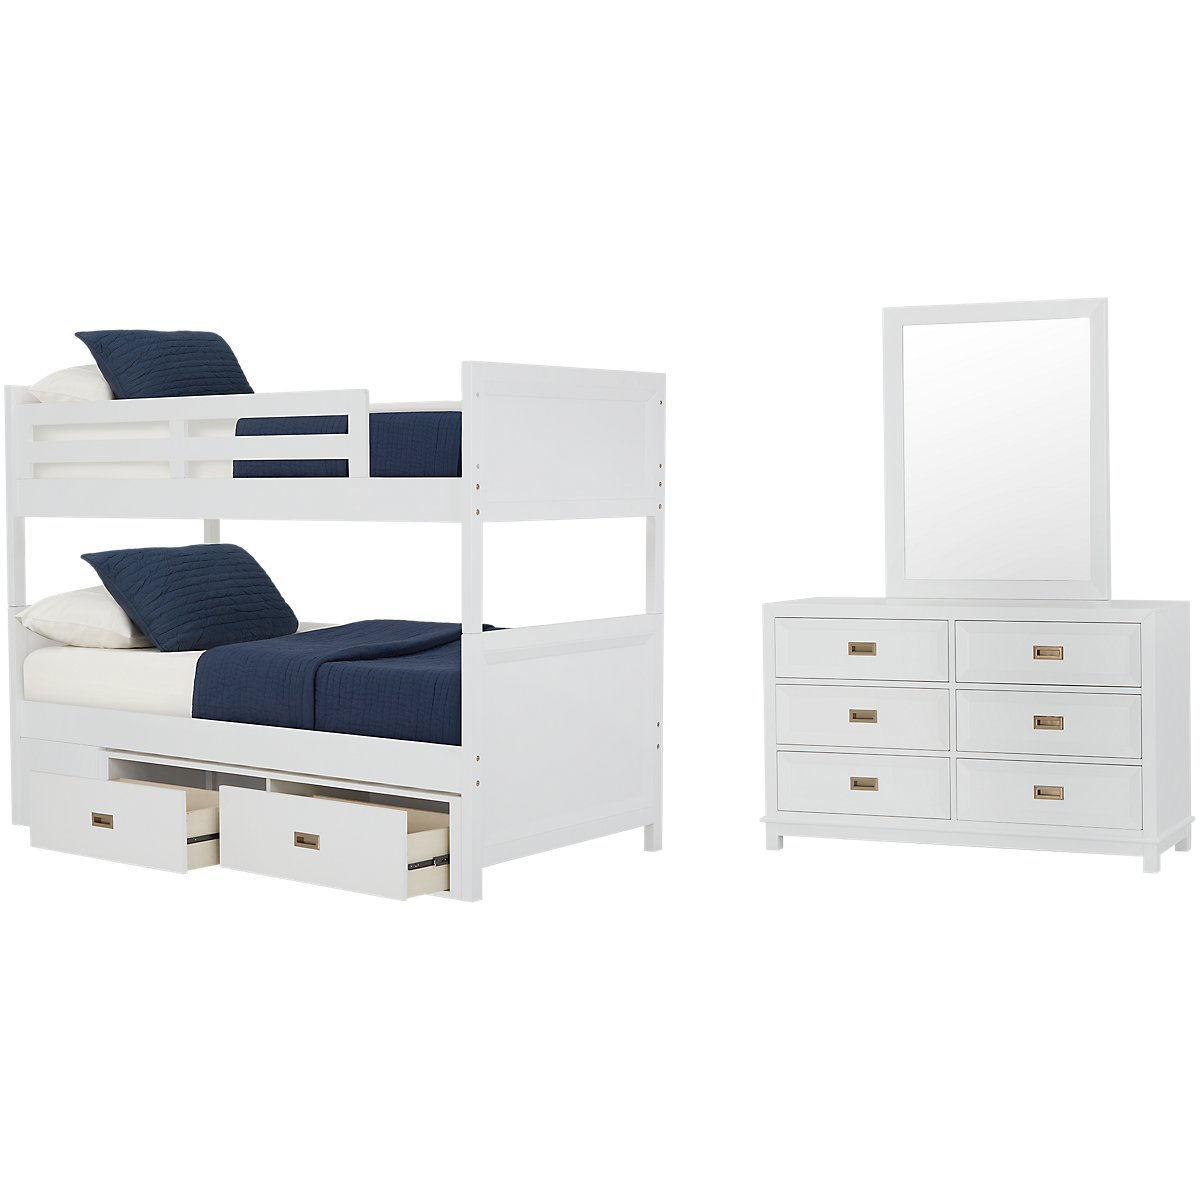 Ryder White Bunk Bed Storage Bedroom